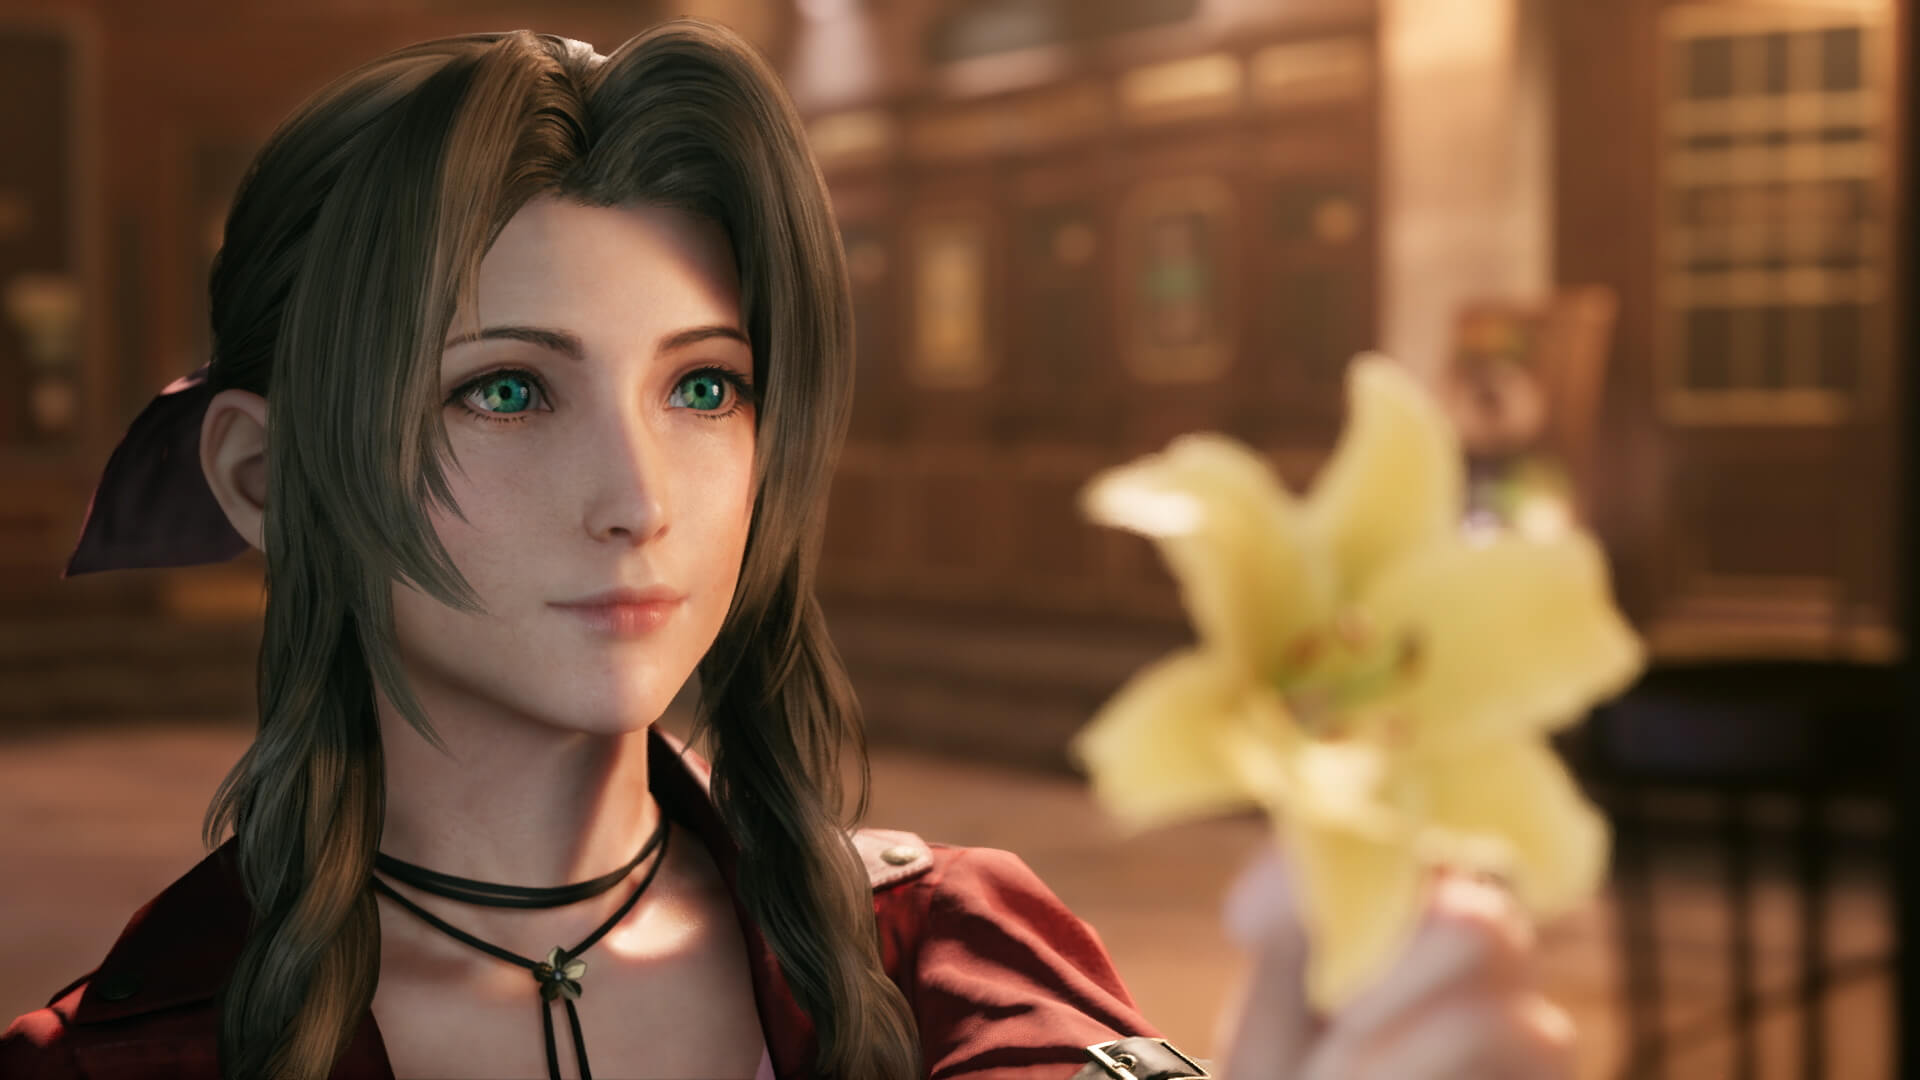 final fantasy 7 remake Aerith